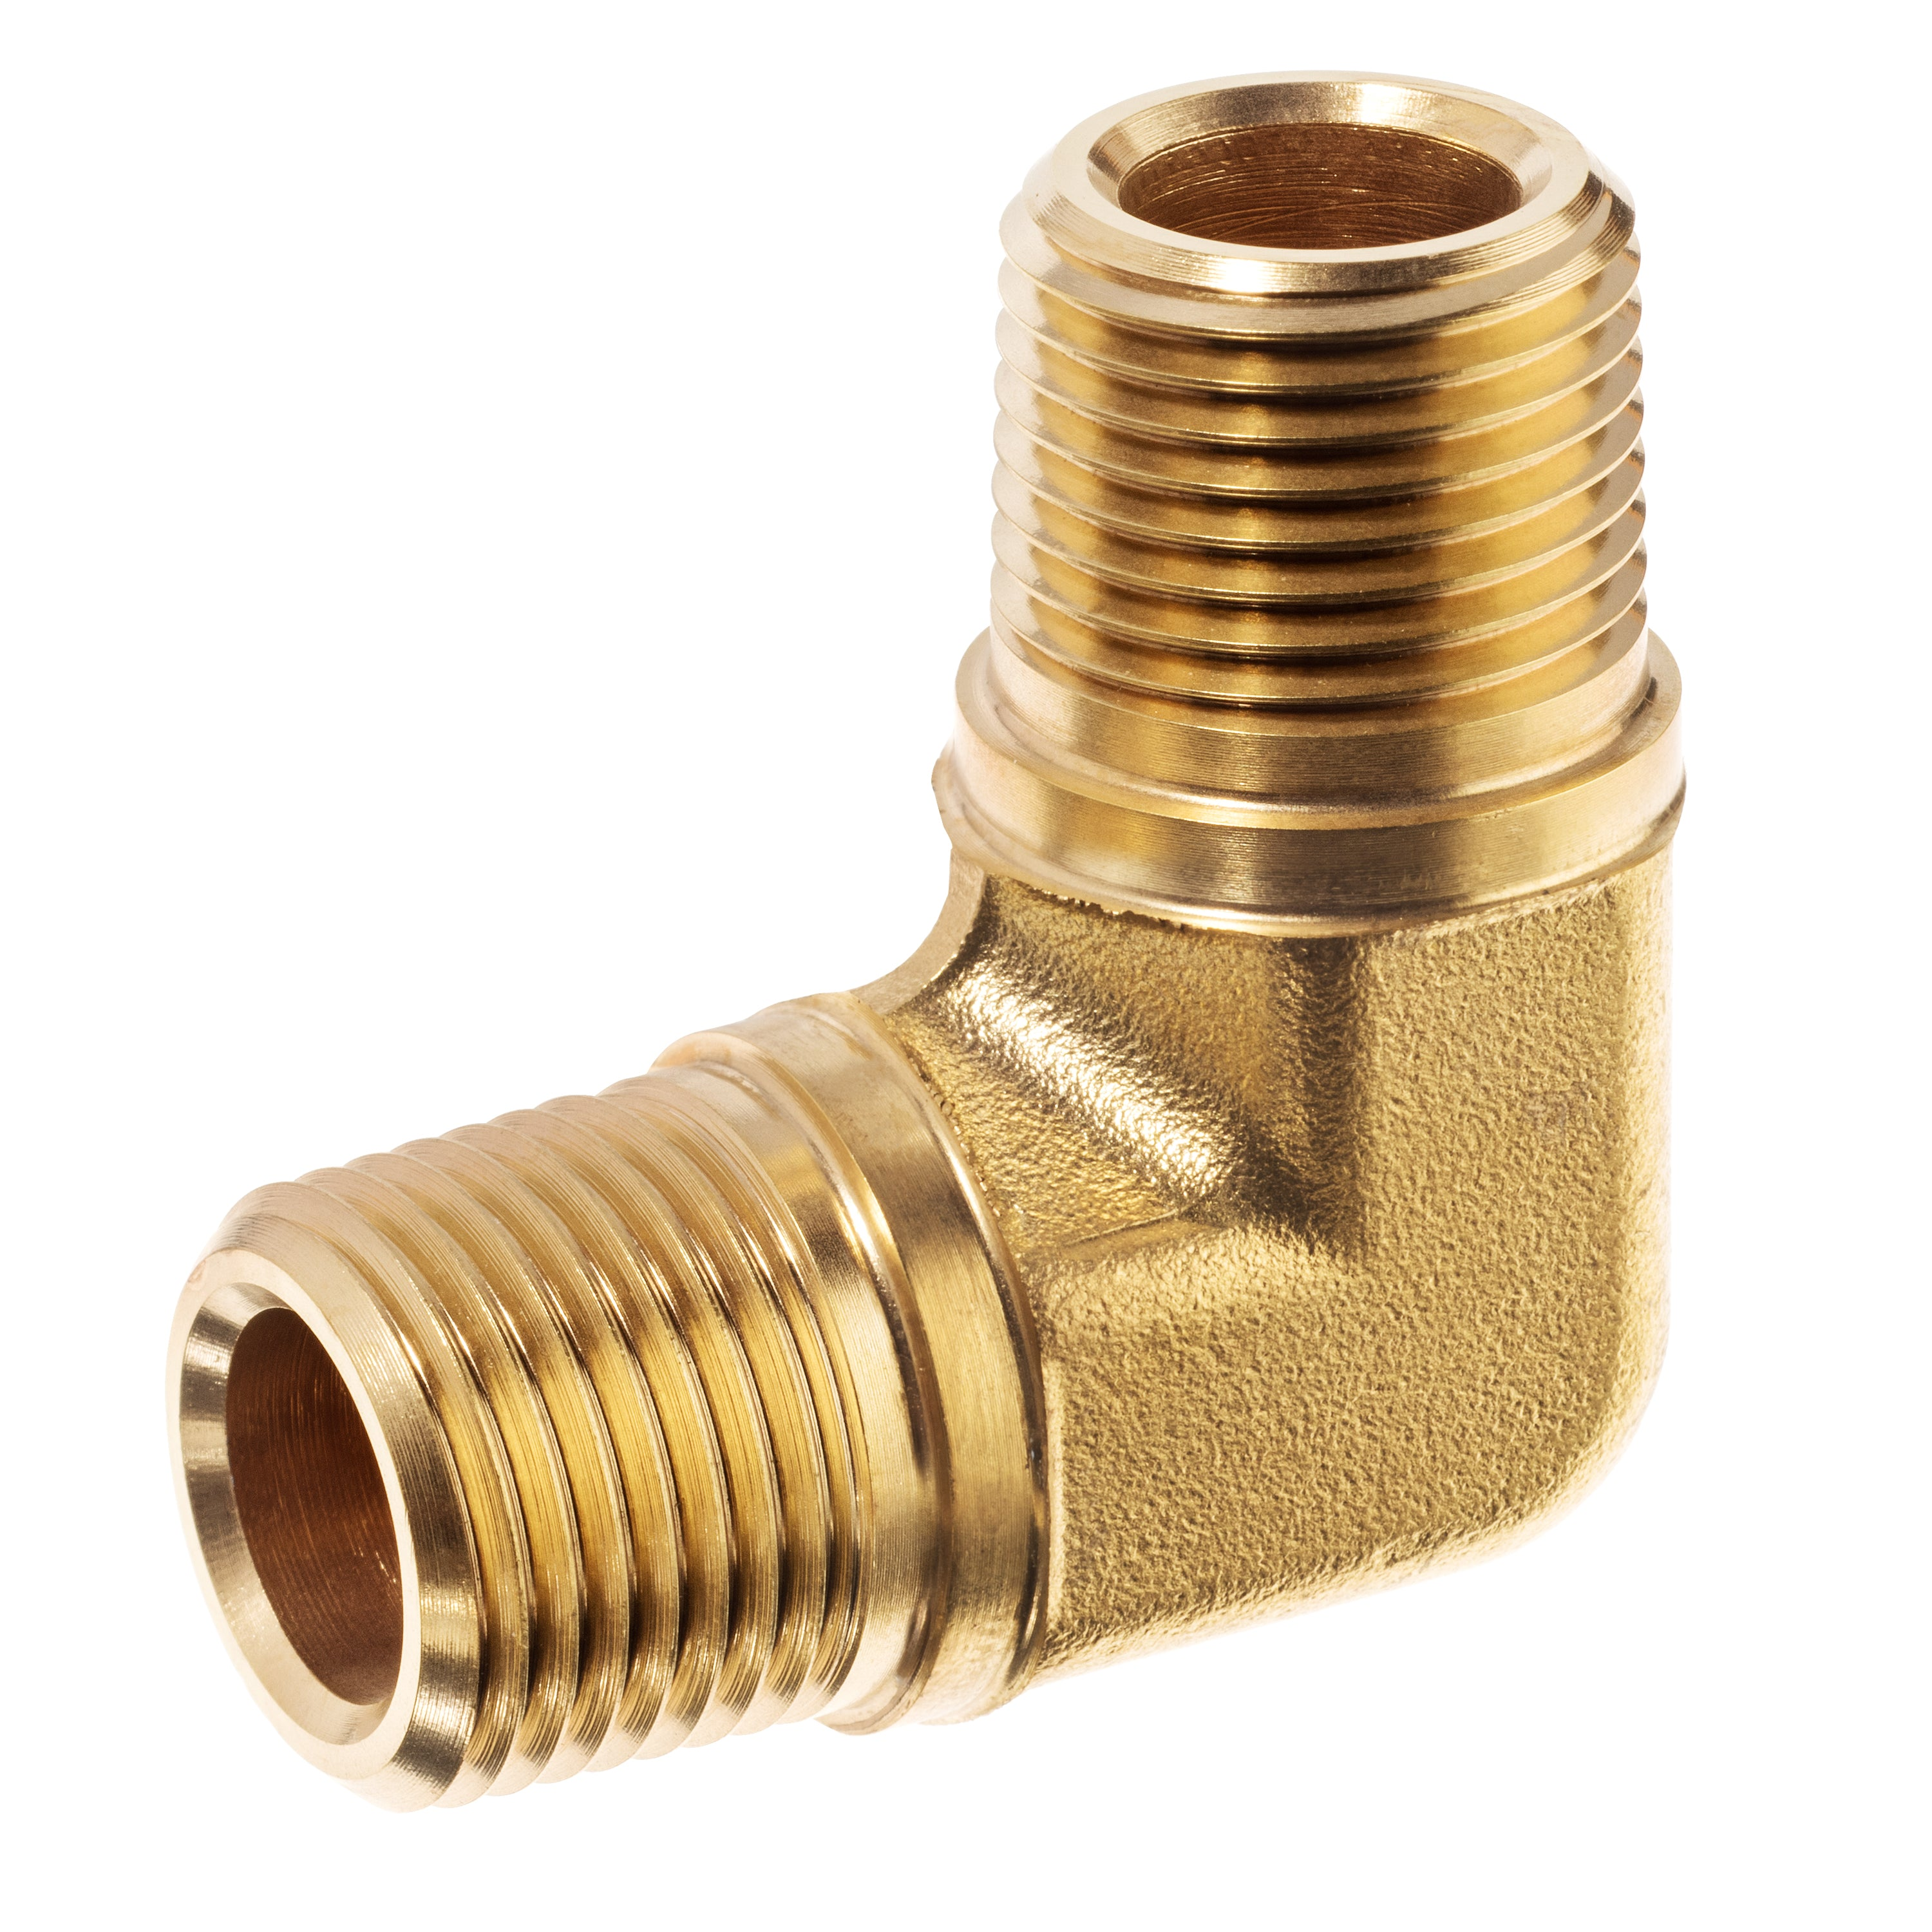 Brass Instrumentation Pipe Fittings